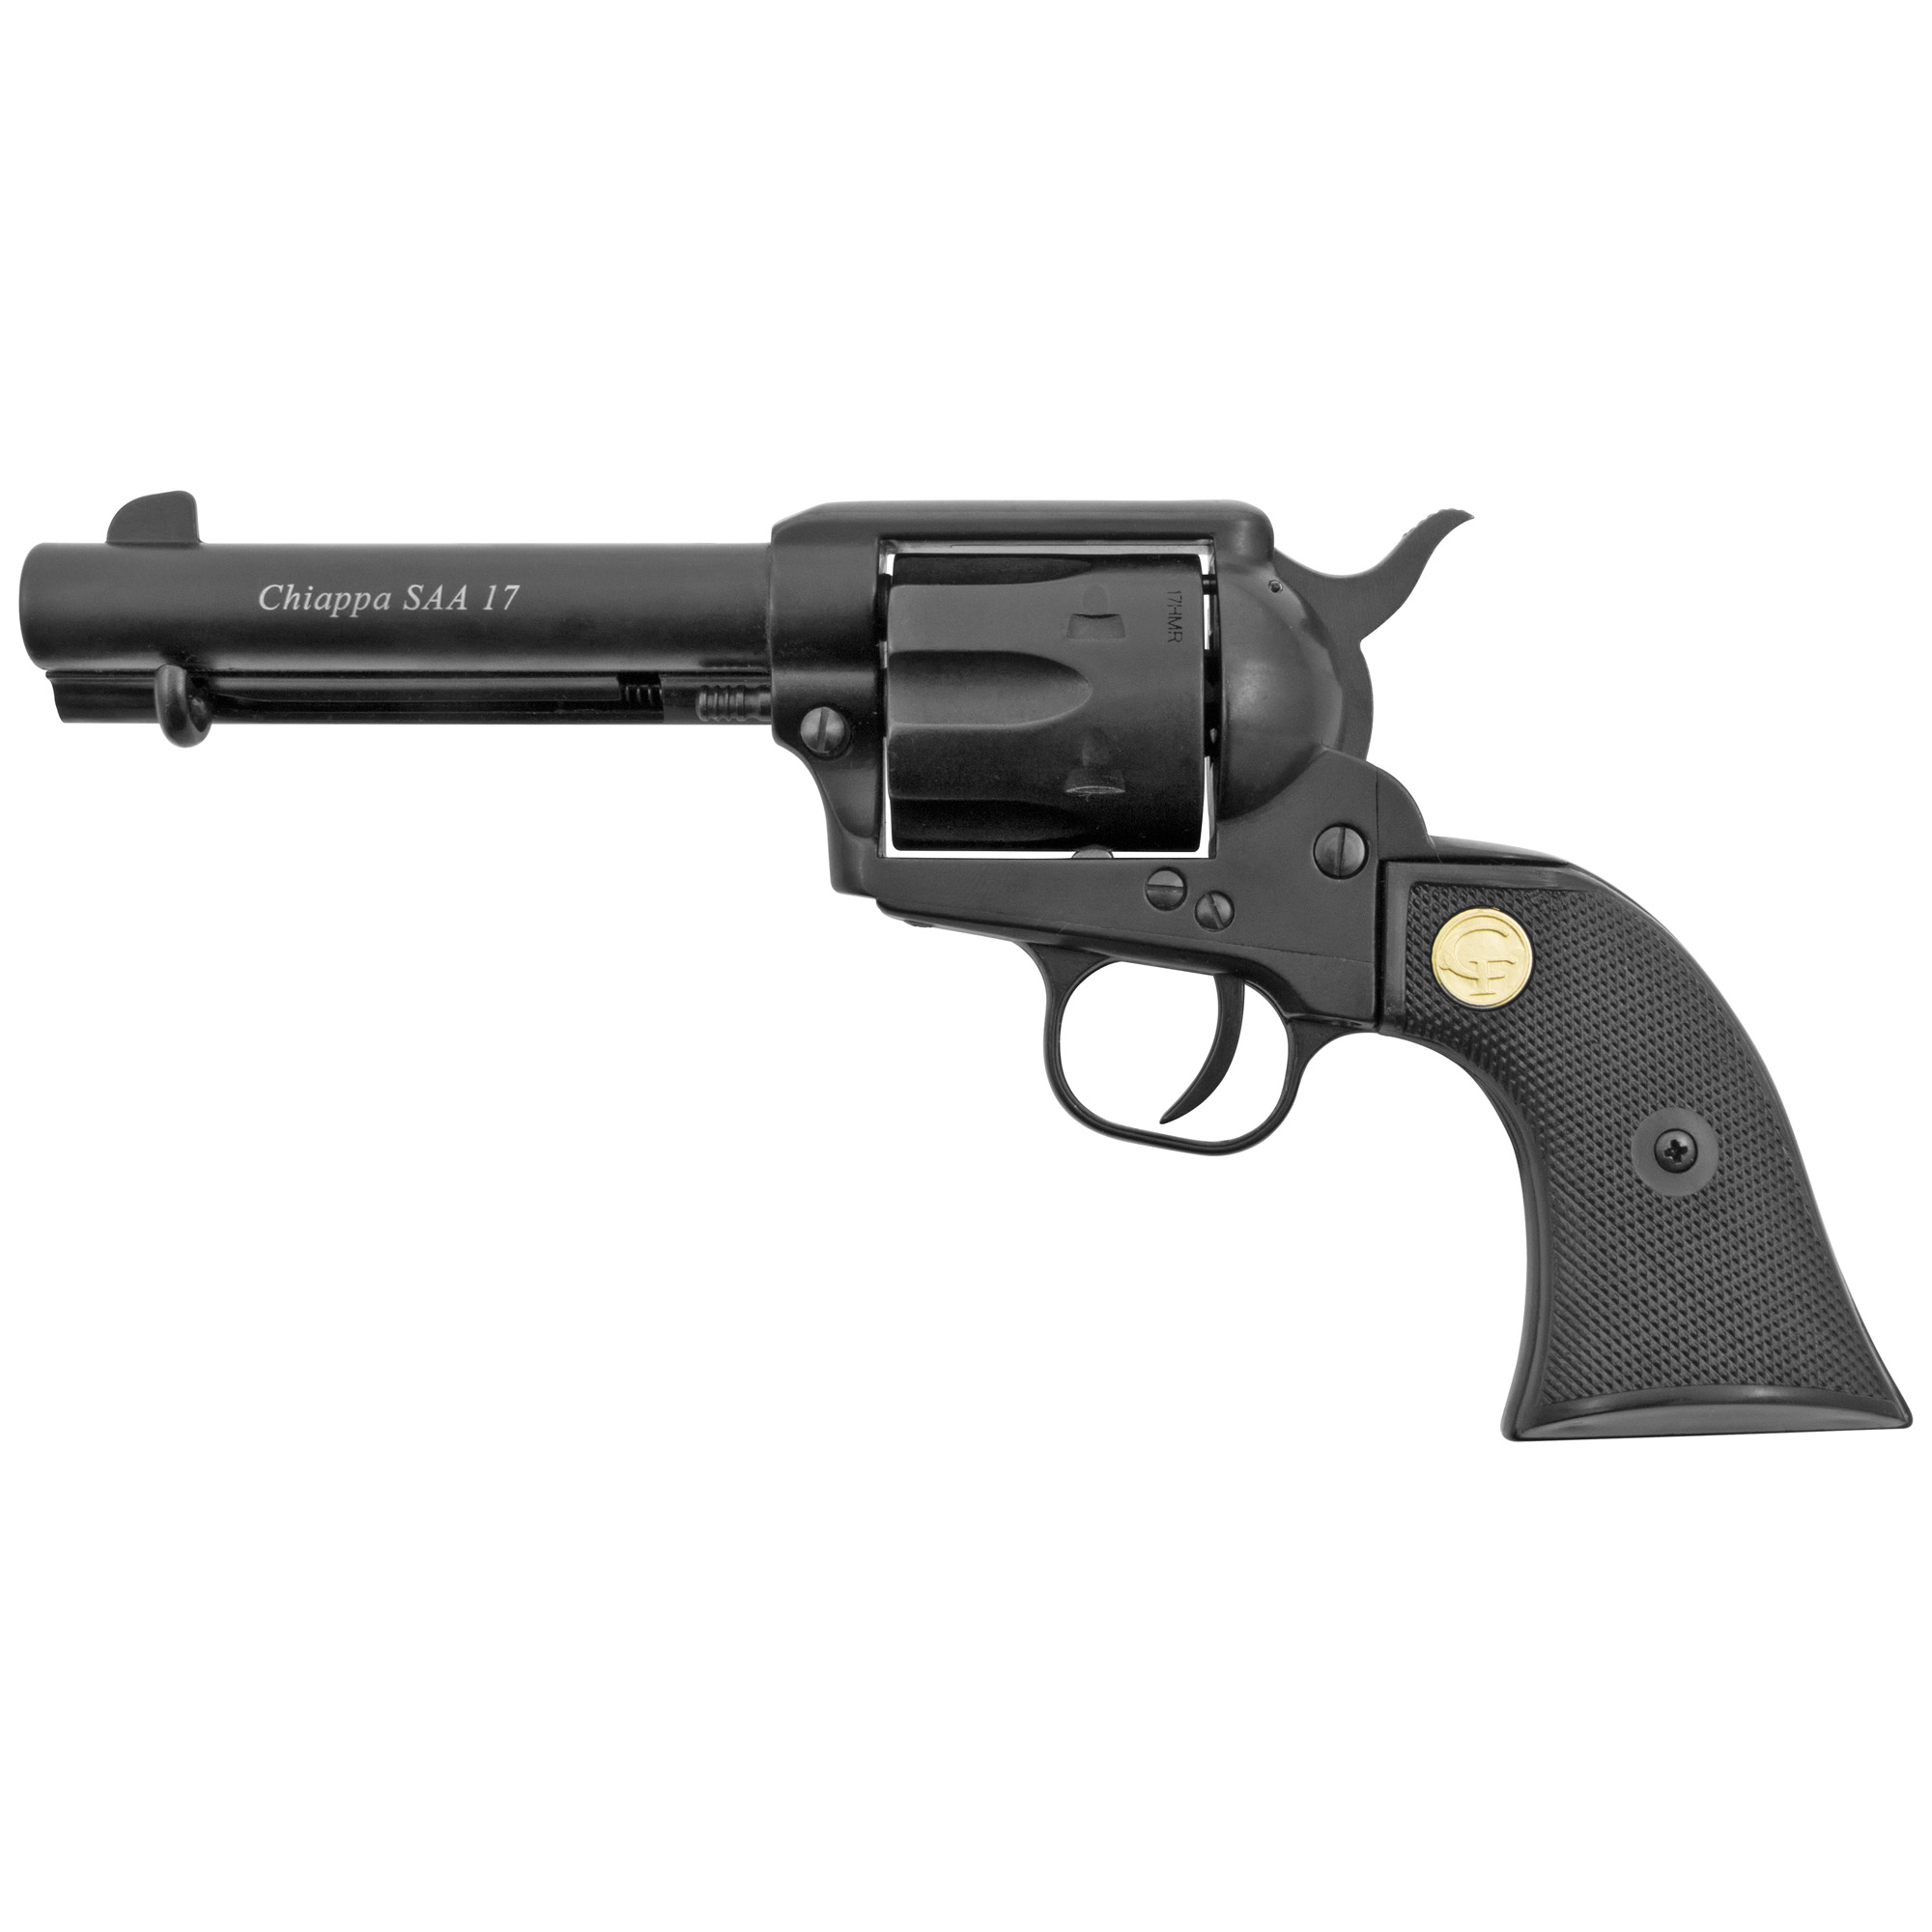 "The single action 1873 is a timeless handgun and a symbol of the American West. The Chiappa SAA 1873 series captures the spirit and allure of these fine revolvers. Chambered in easy to shoot"" readily accessible rimfire cartridges the SAA 1873 is an excellent single action revolver"